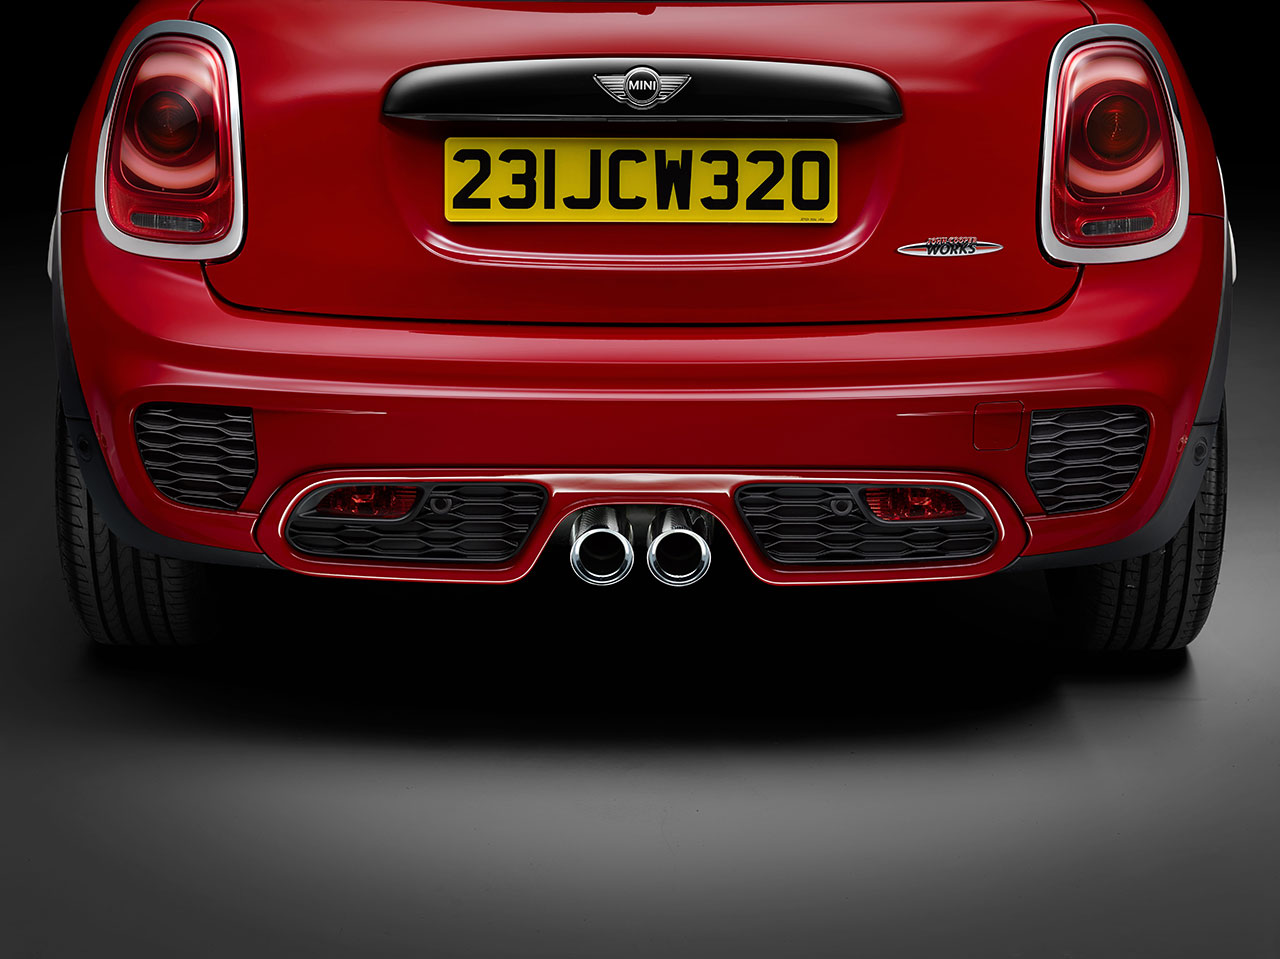 Mini John Cooper Works Hatch rear